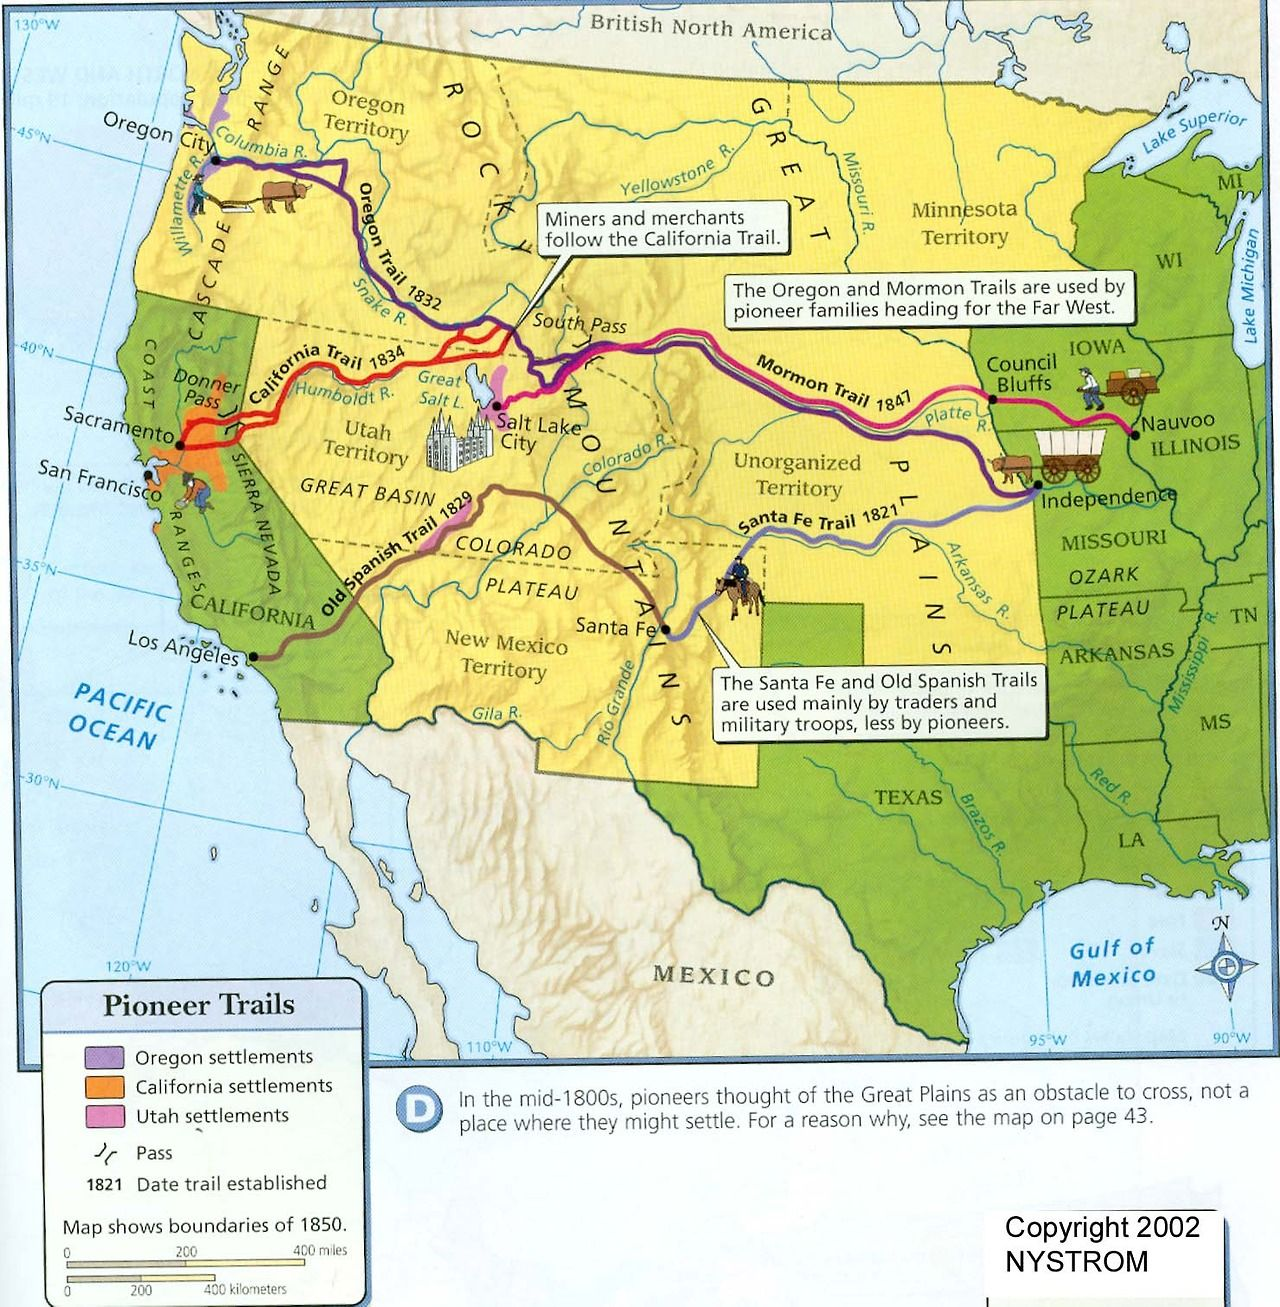 Oregon Trail On Us Map.This Map Shows The Routes Of The Pioneer Trails By Which The